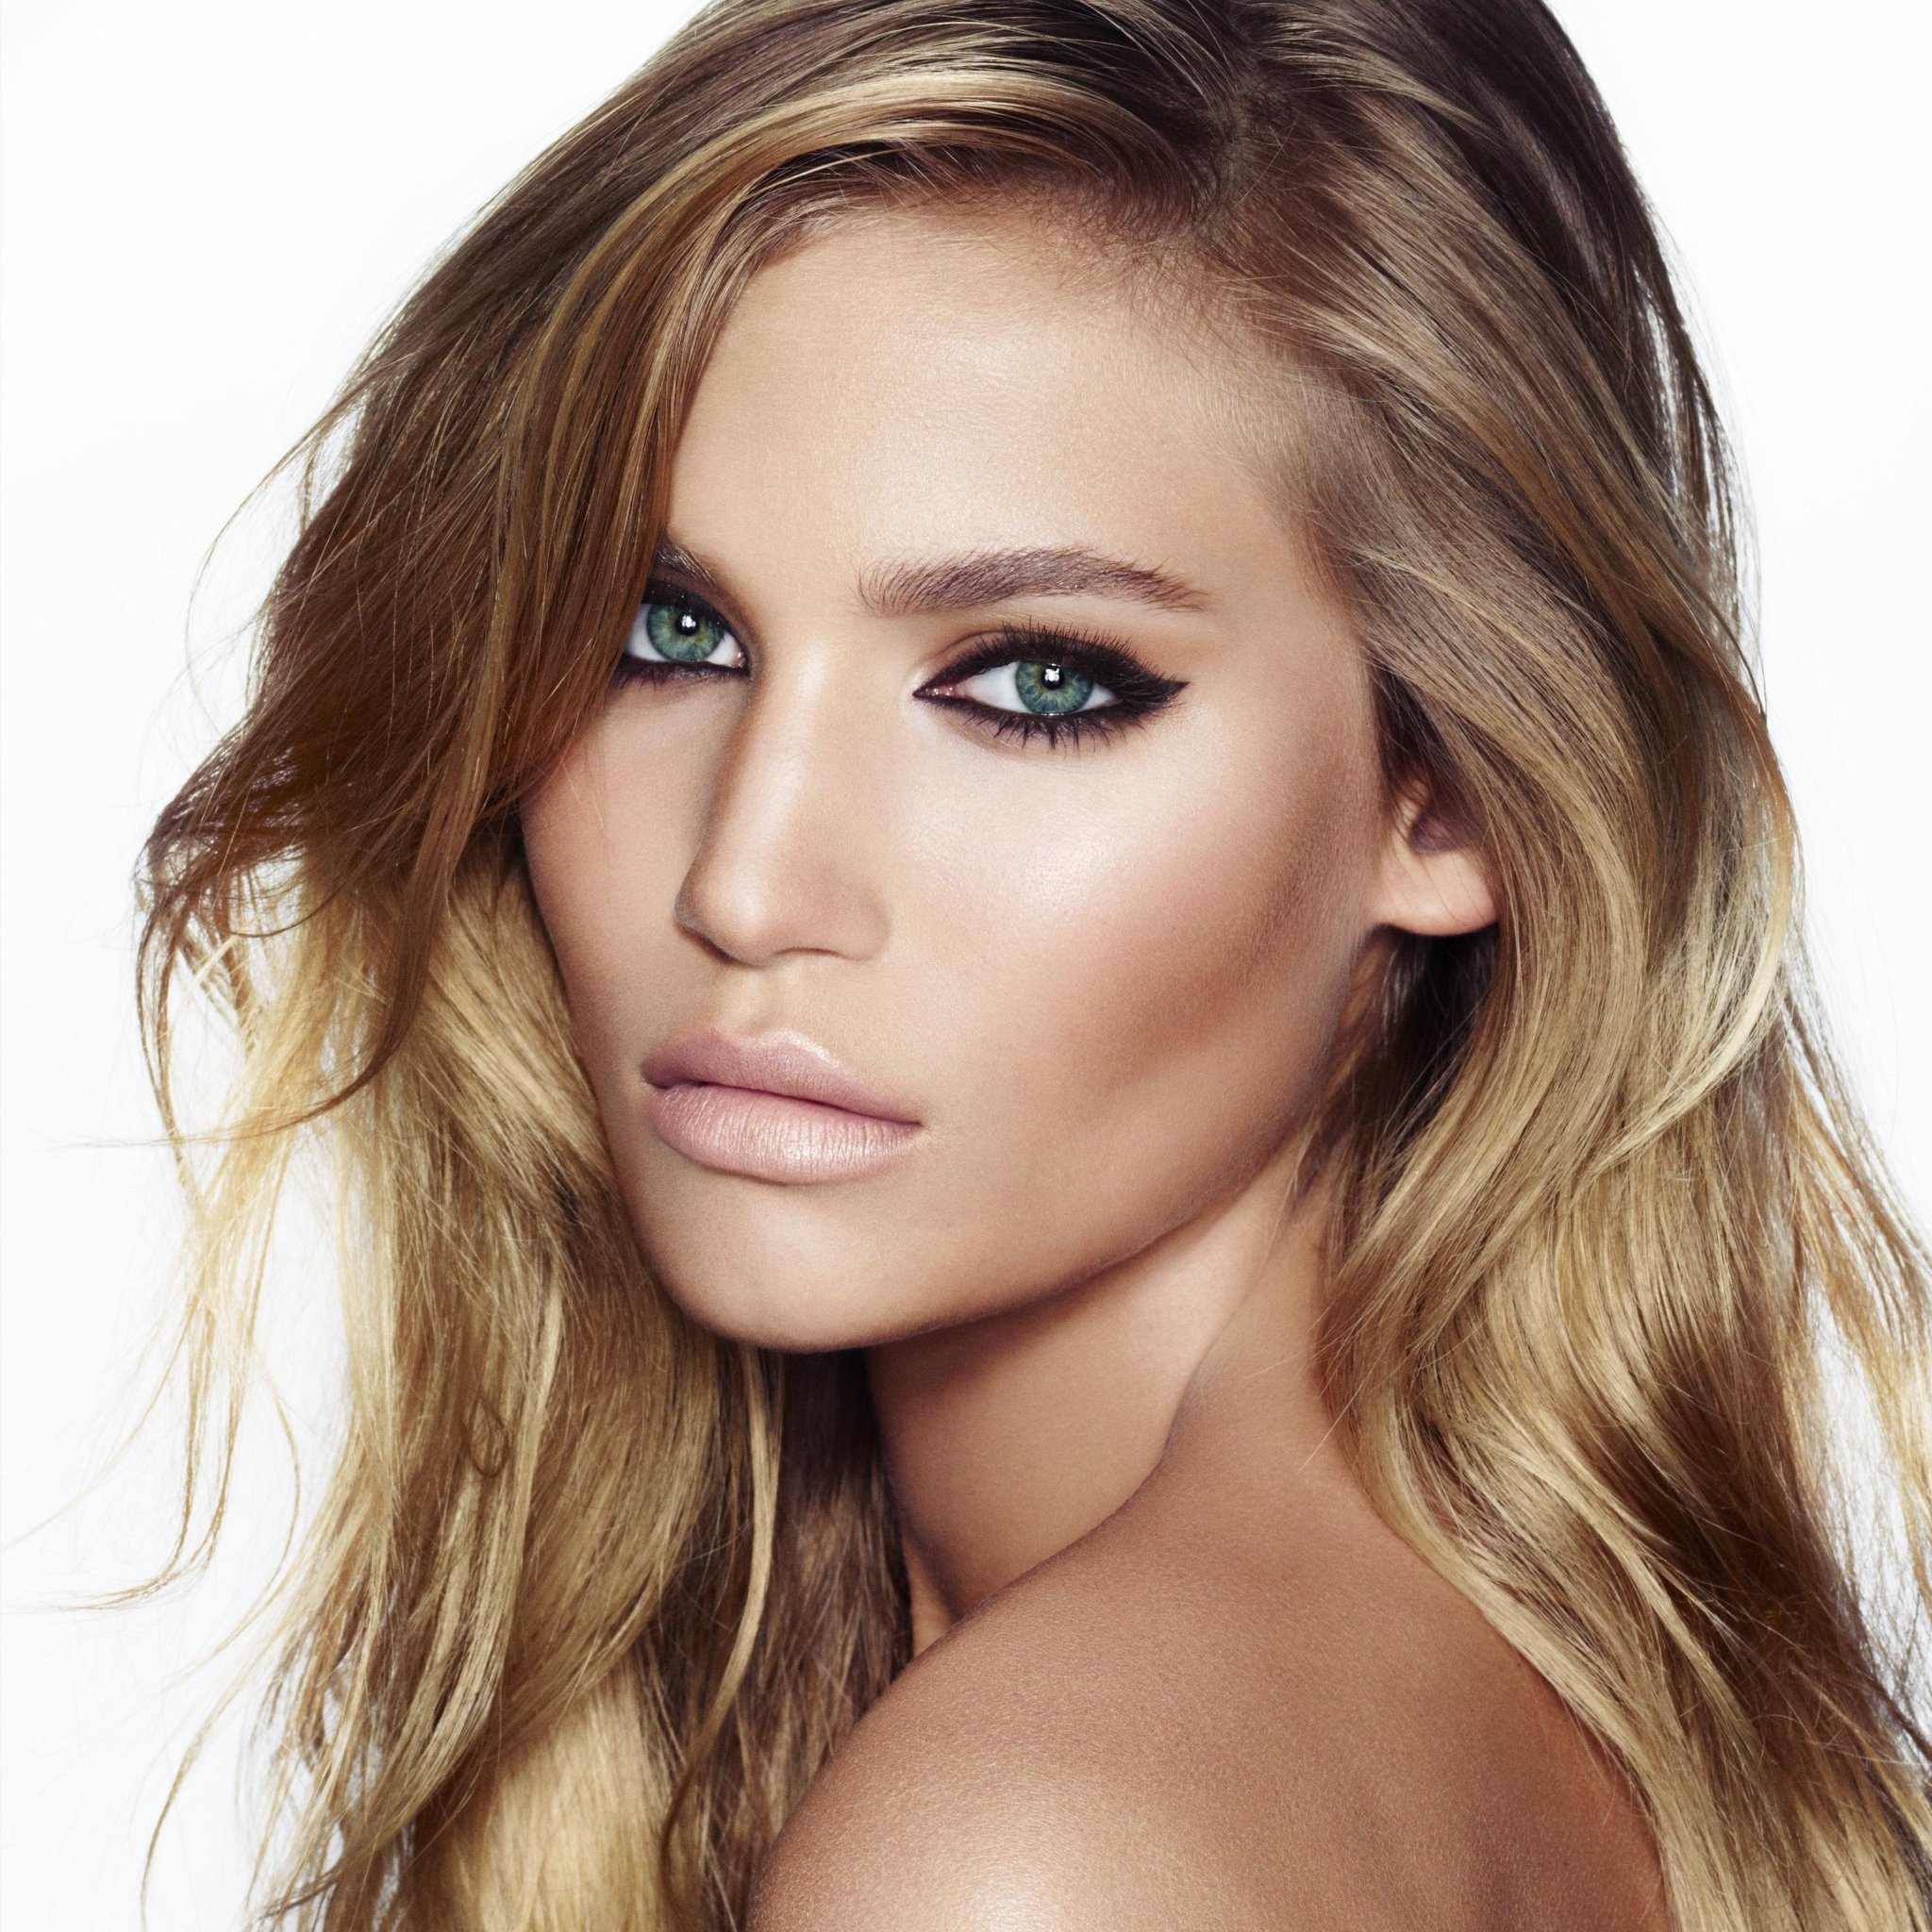 RT @spring: Welcoming @CTilburyMakeup to the Spring family! Your day-to-night beauty look, decoded: http://t.co/hKgcQvmzk9 http://t.co/1qxs…